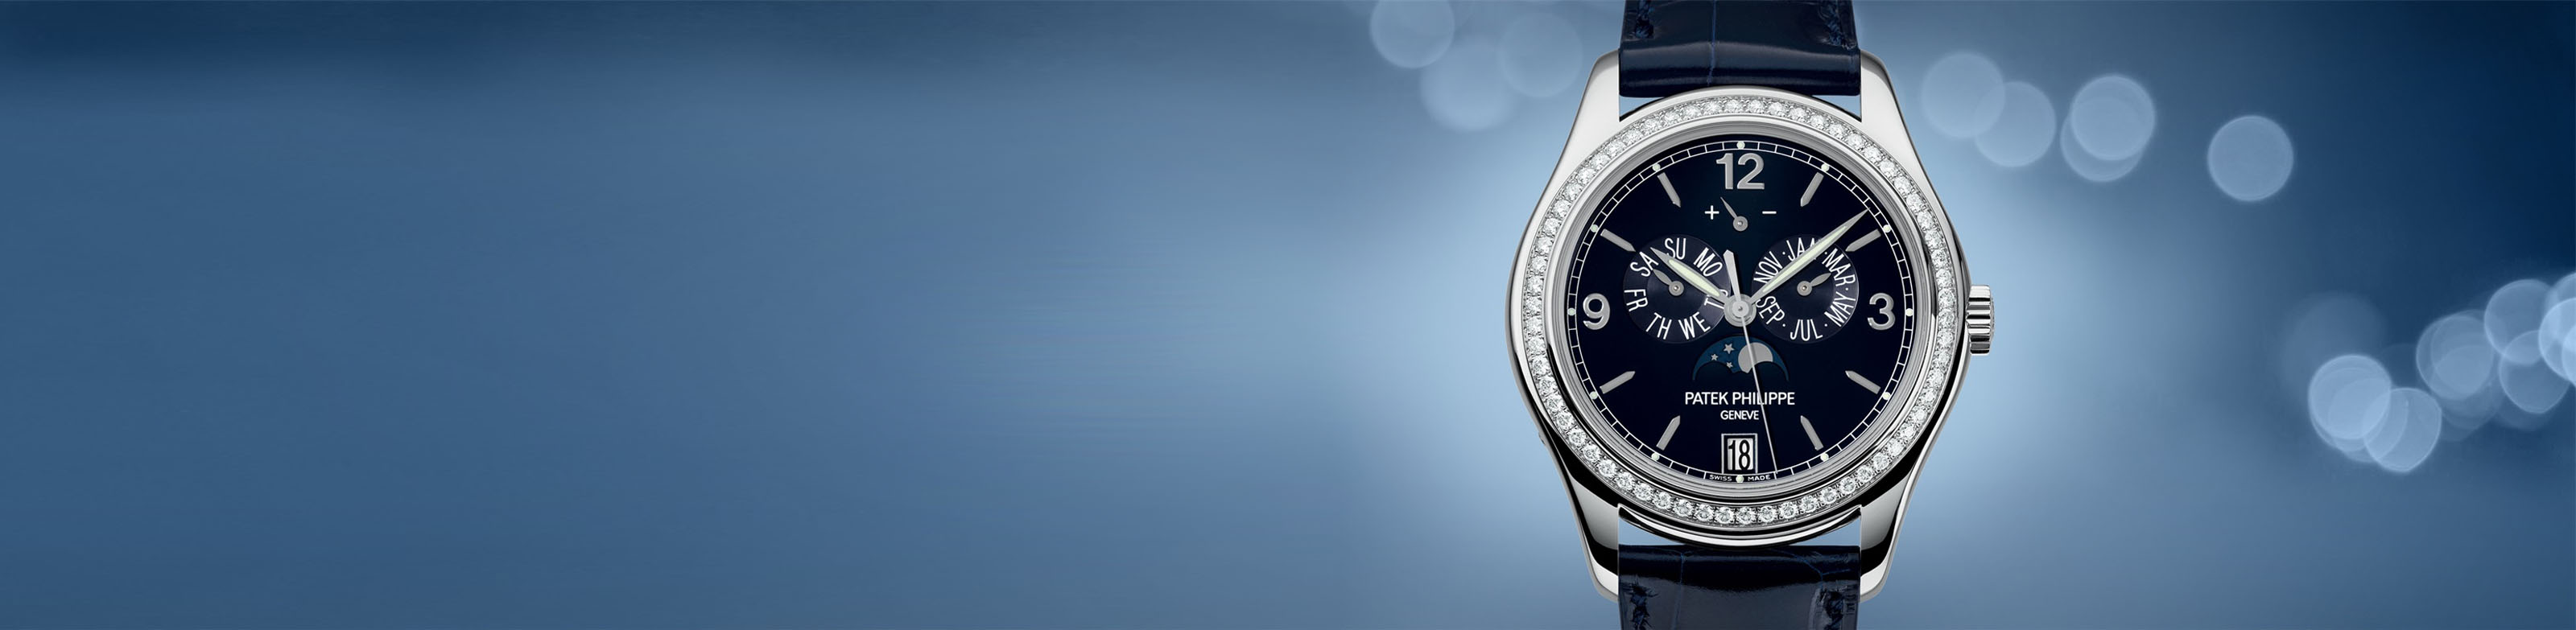 PATEK PHILIPPE - NEW ARRIVALS - MARCH 2021 NEWS article hero image